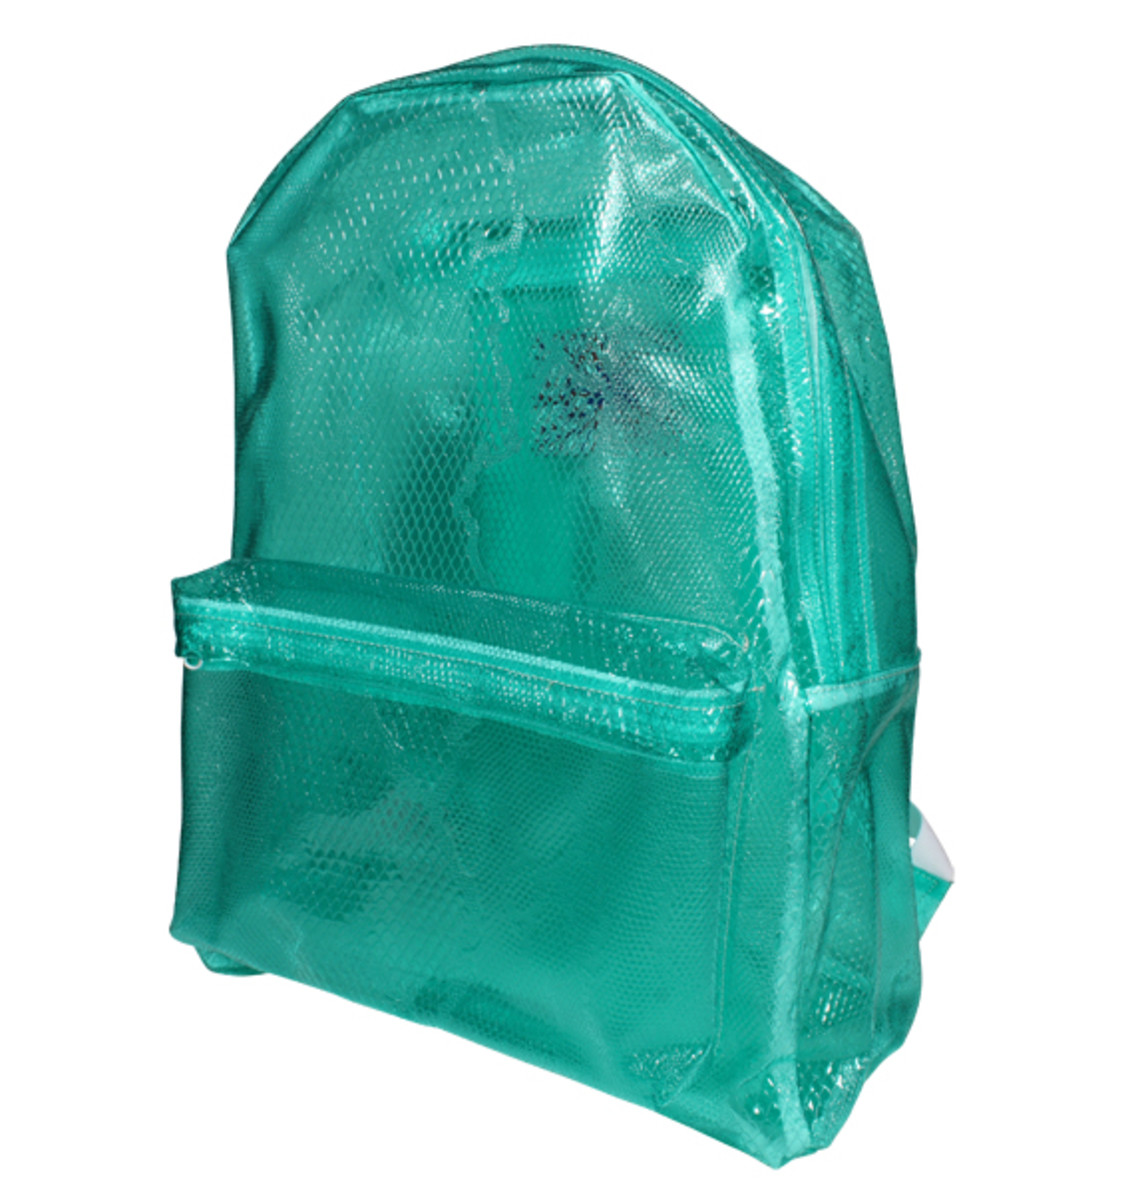 PHENOMENON - PVC Clear Backpack - Green (Snake)